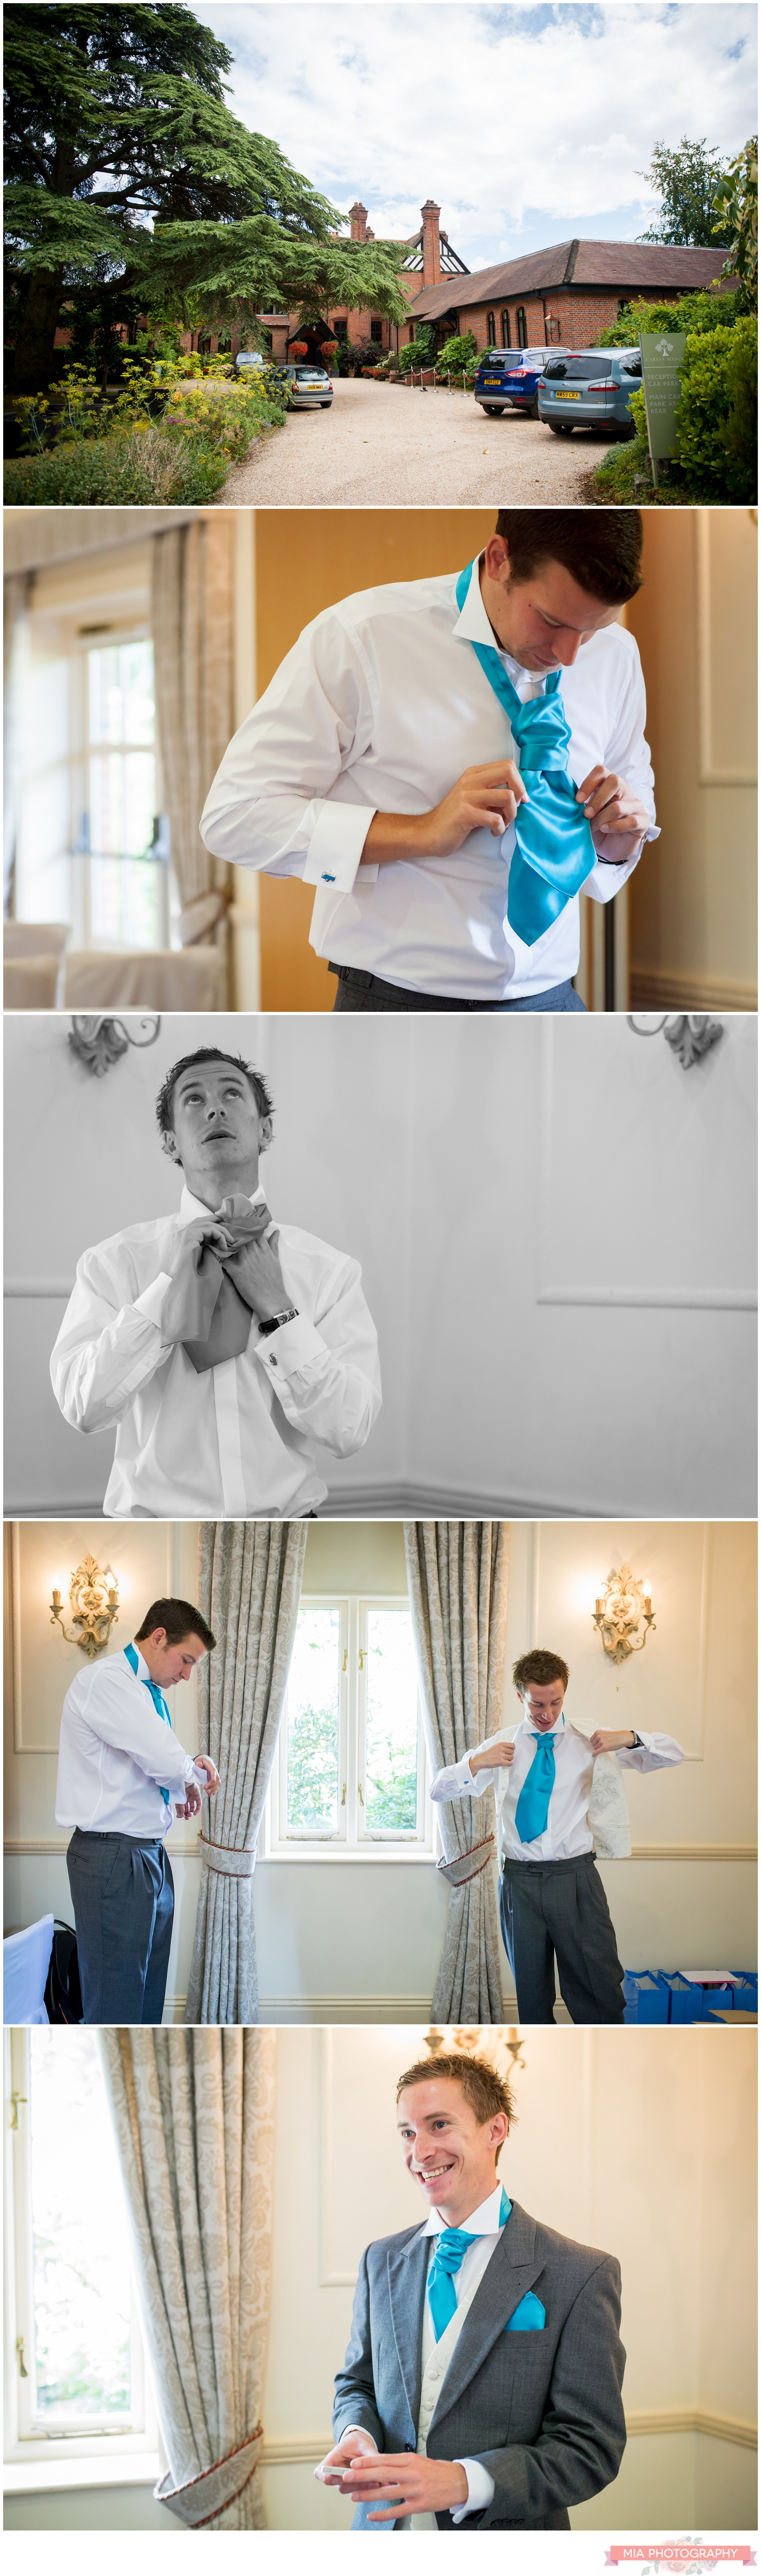 Careys manor wedding in the new forest